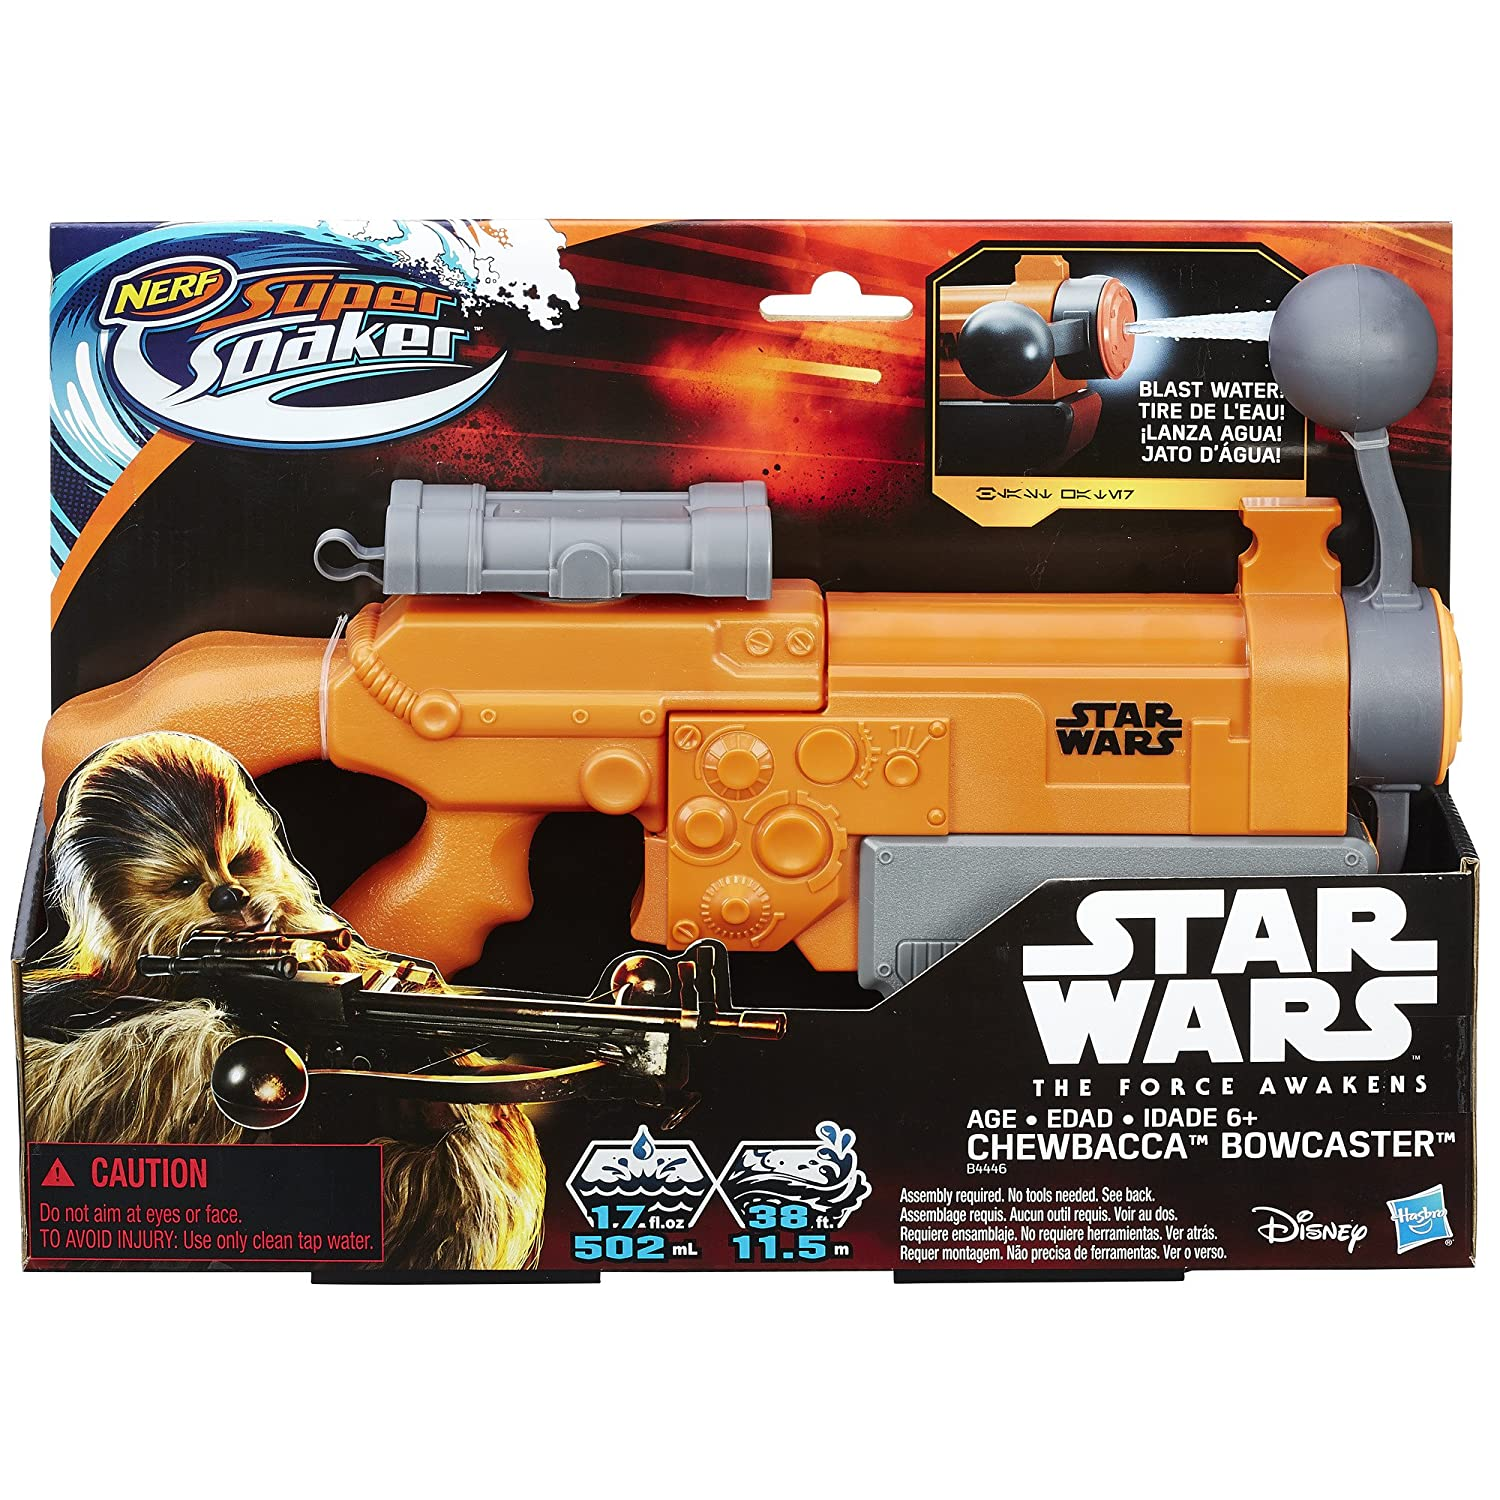 Amazon Star Wars Episode VII Nerf Super Soaker Chewbacca Bowcaster Toys & Games